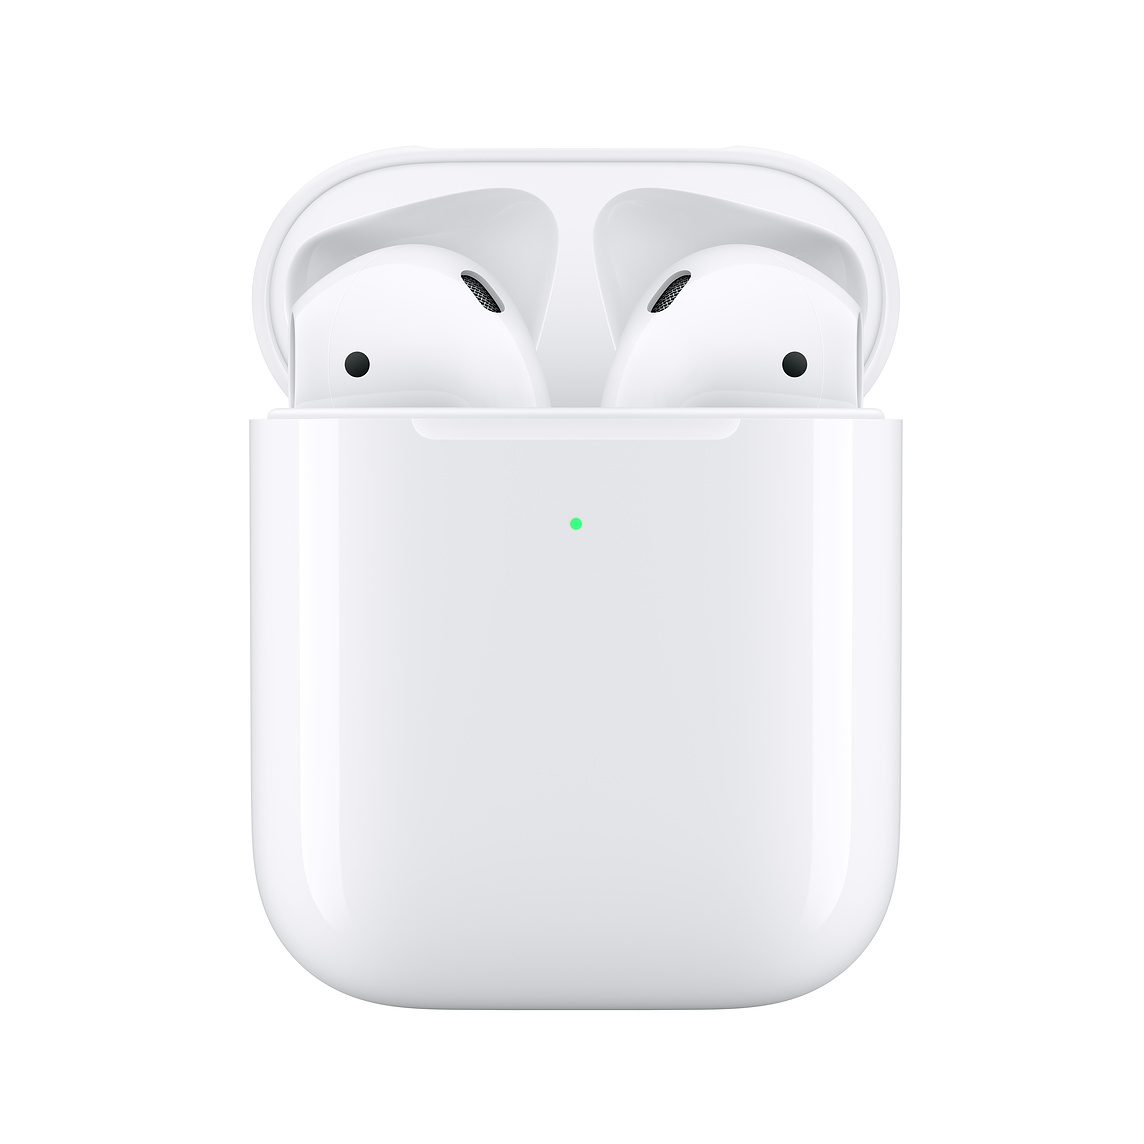 e6ead8b6c7a Buy AirPods with Wireless Charging Case - Apple (CA)